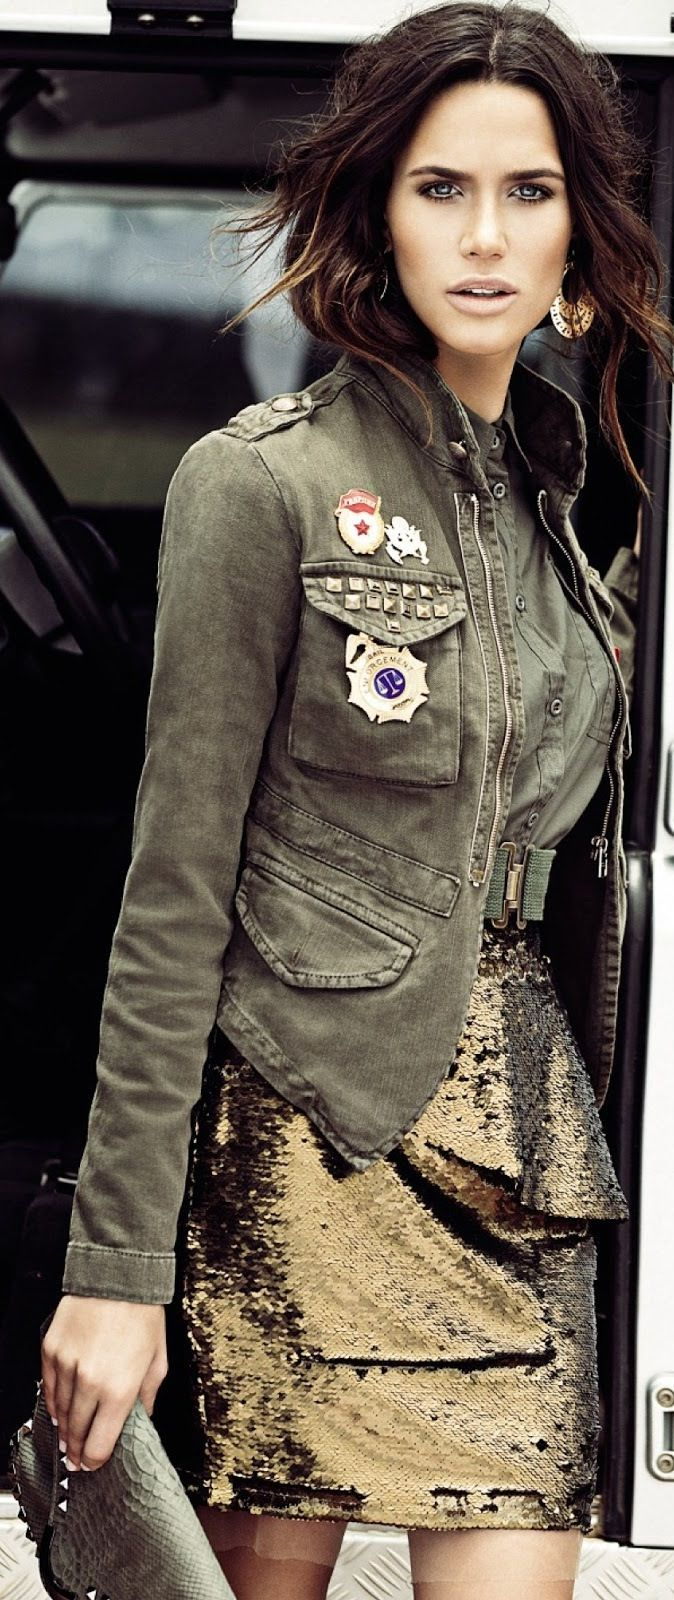 Fall street style - Rhayene Polster Vogue Brazil March 2013, military jacket and glitter gold skirt